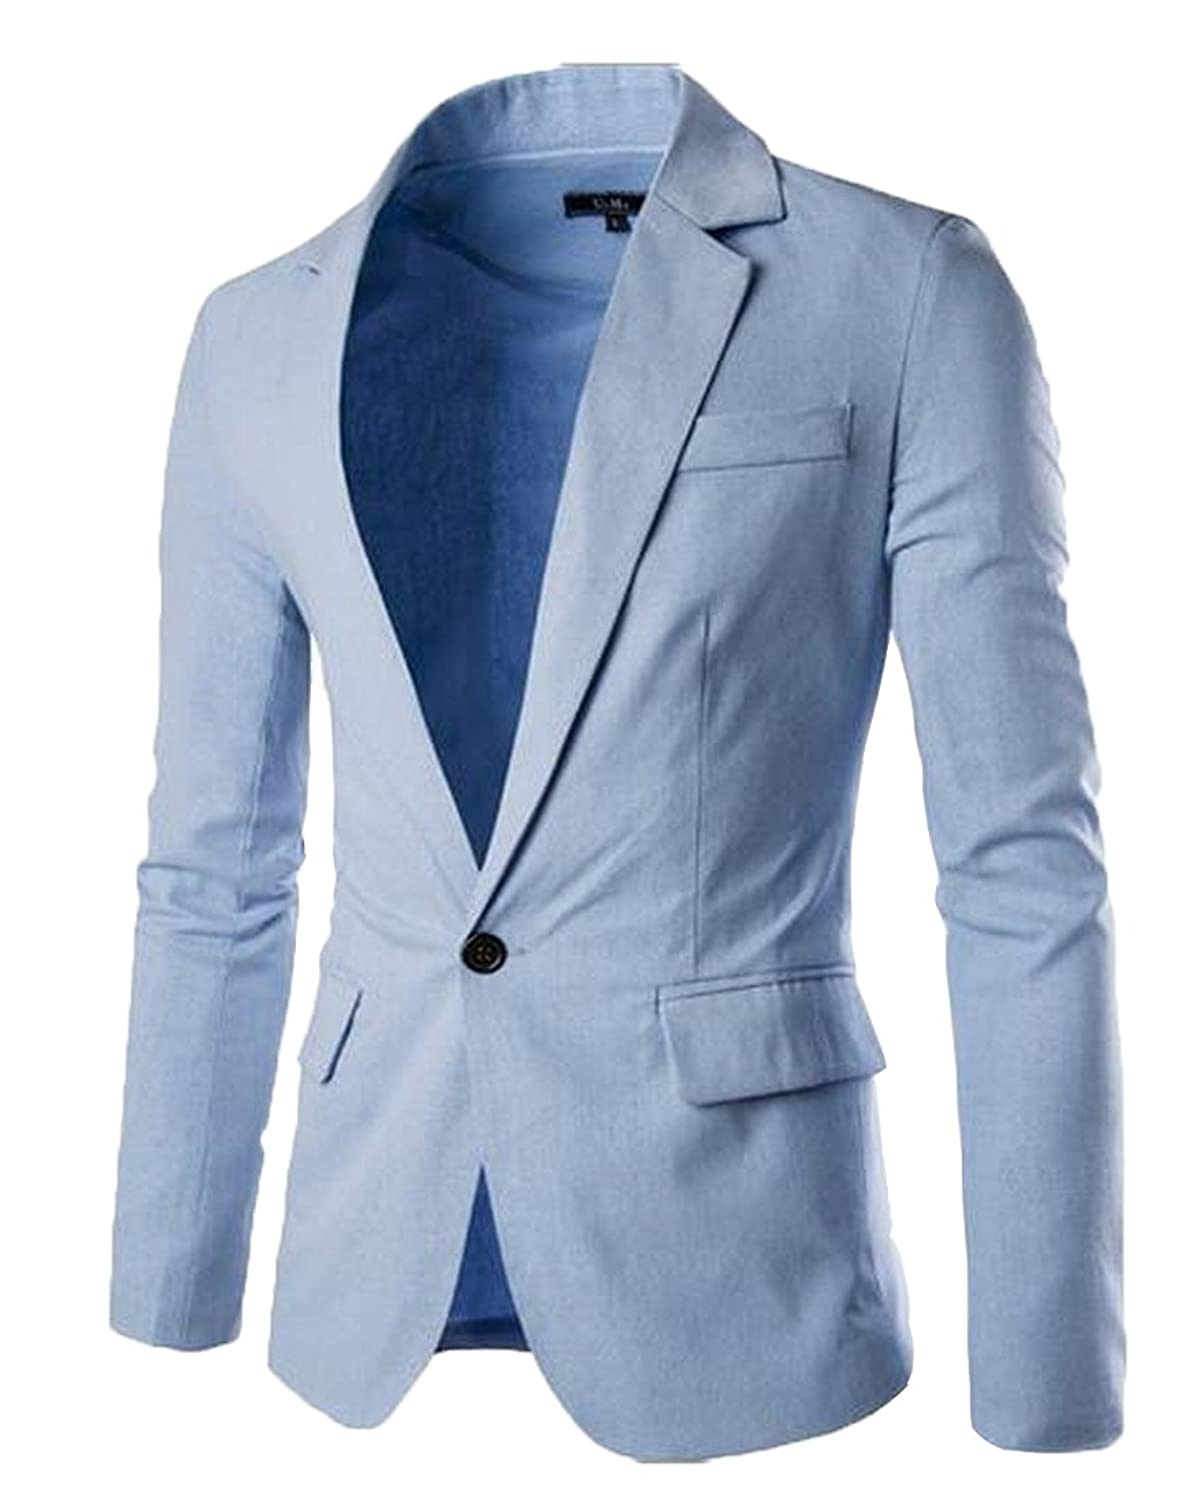 Abetteric Men's Individuality Chic Blouse One Button Suit Jacket Top